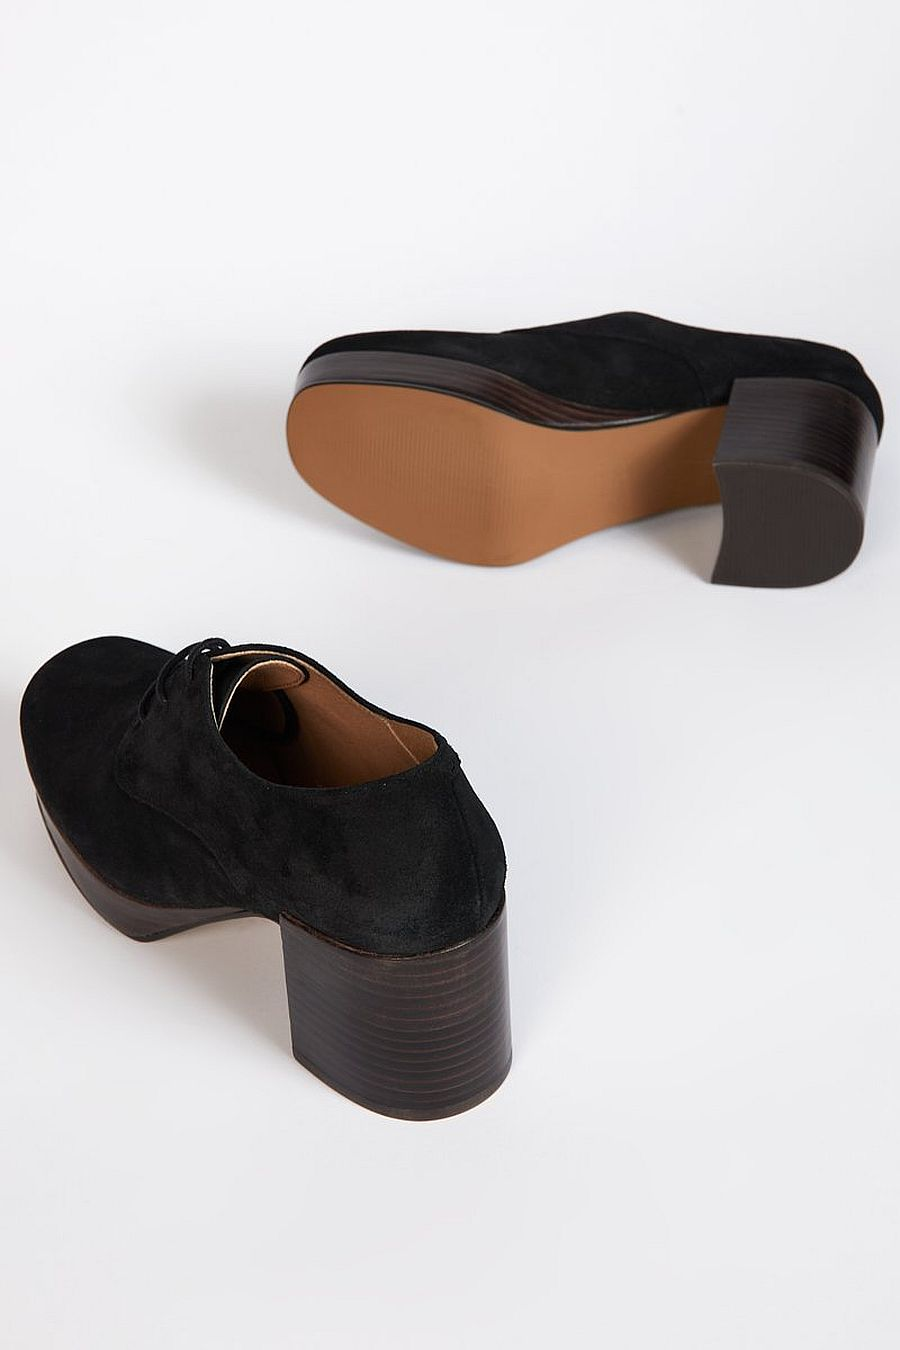 Intentionally Blank ALBANY Black Suede